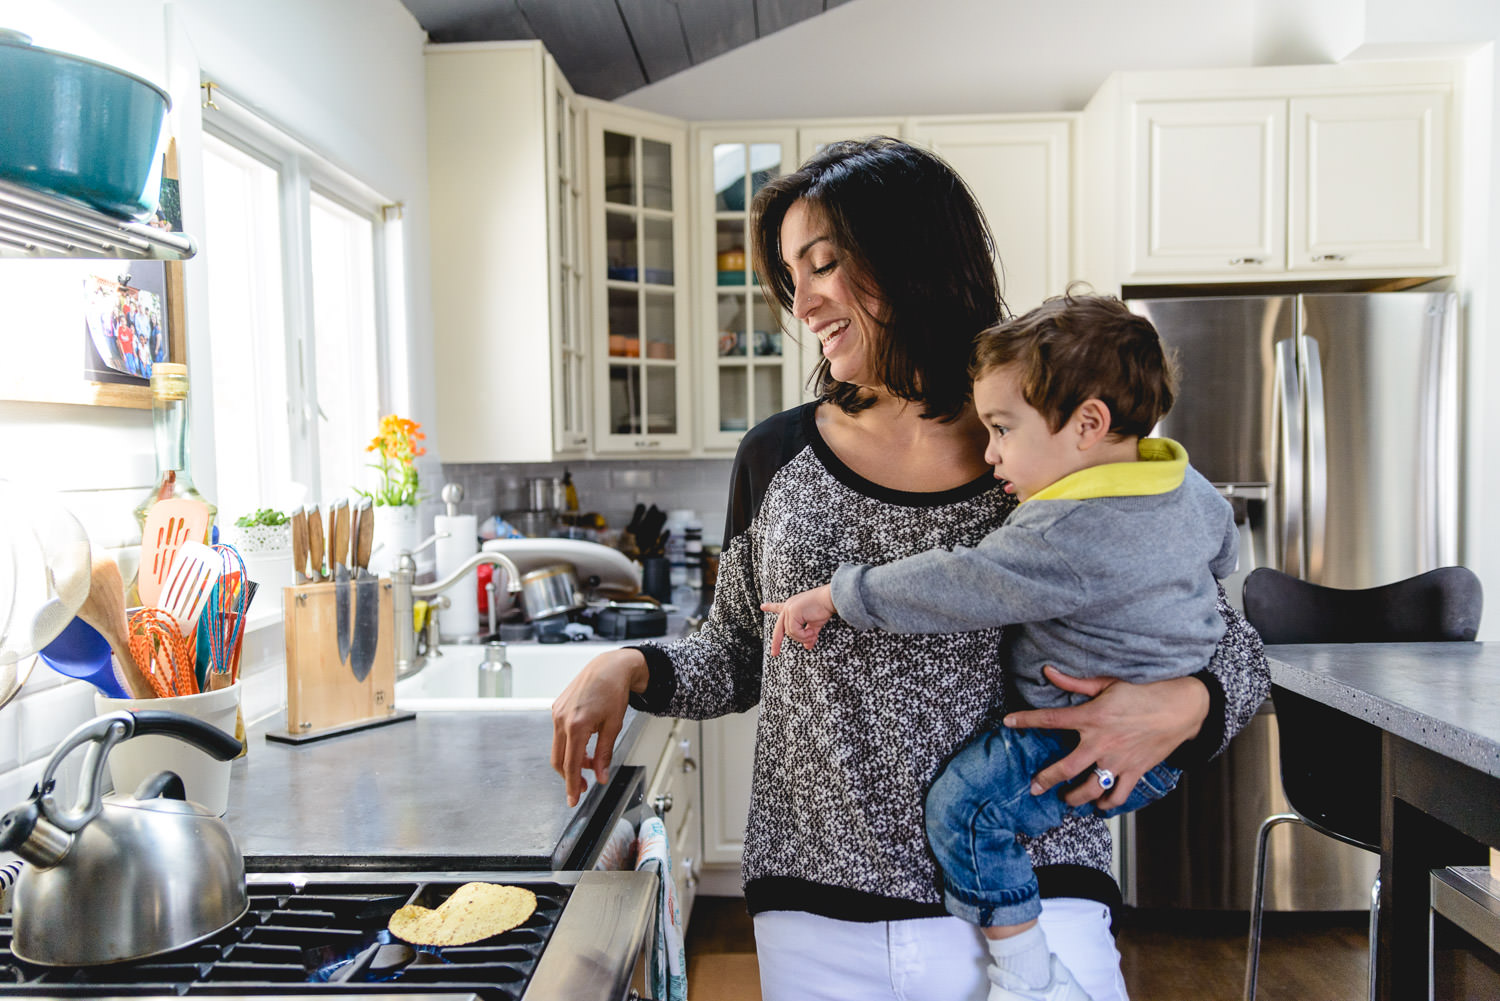 A mother cooks a tortilla while holding her young son.